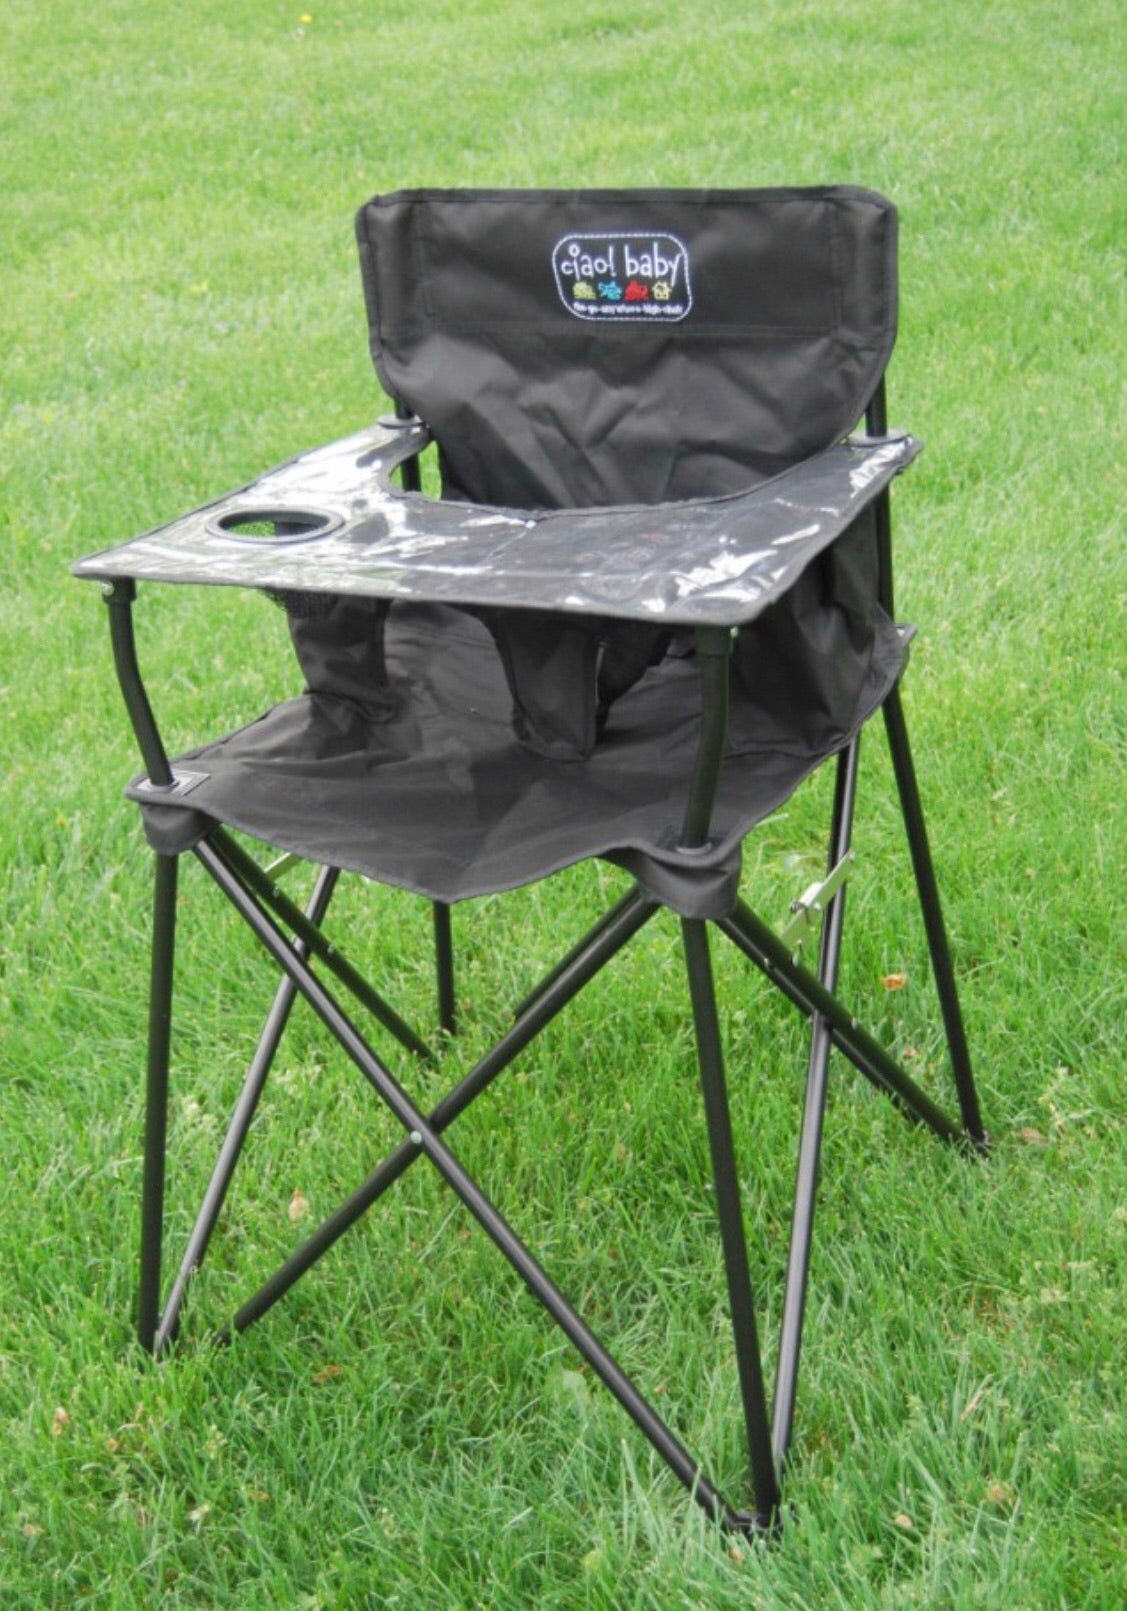 Sensational Ciao Baby Black Portable High Chair Ocoug Best Dining Table And Chair Ideas Images Ocougorg